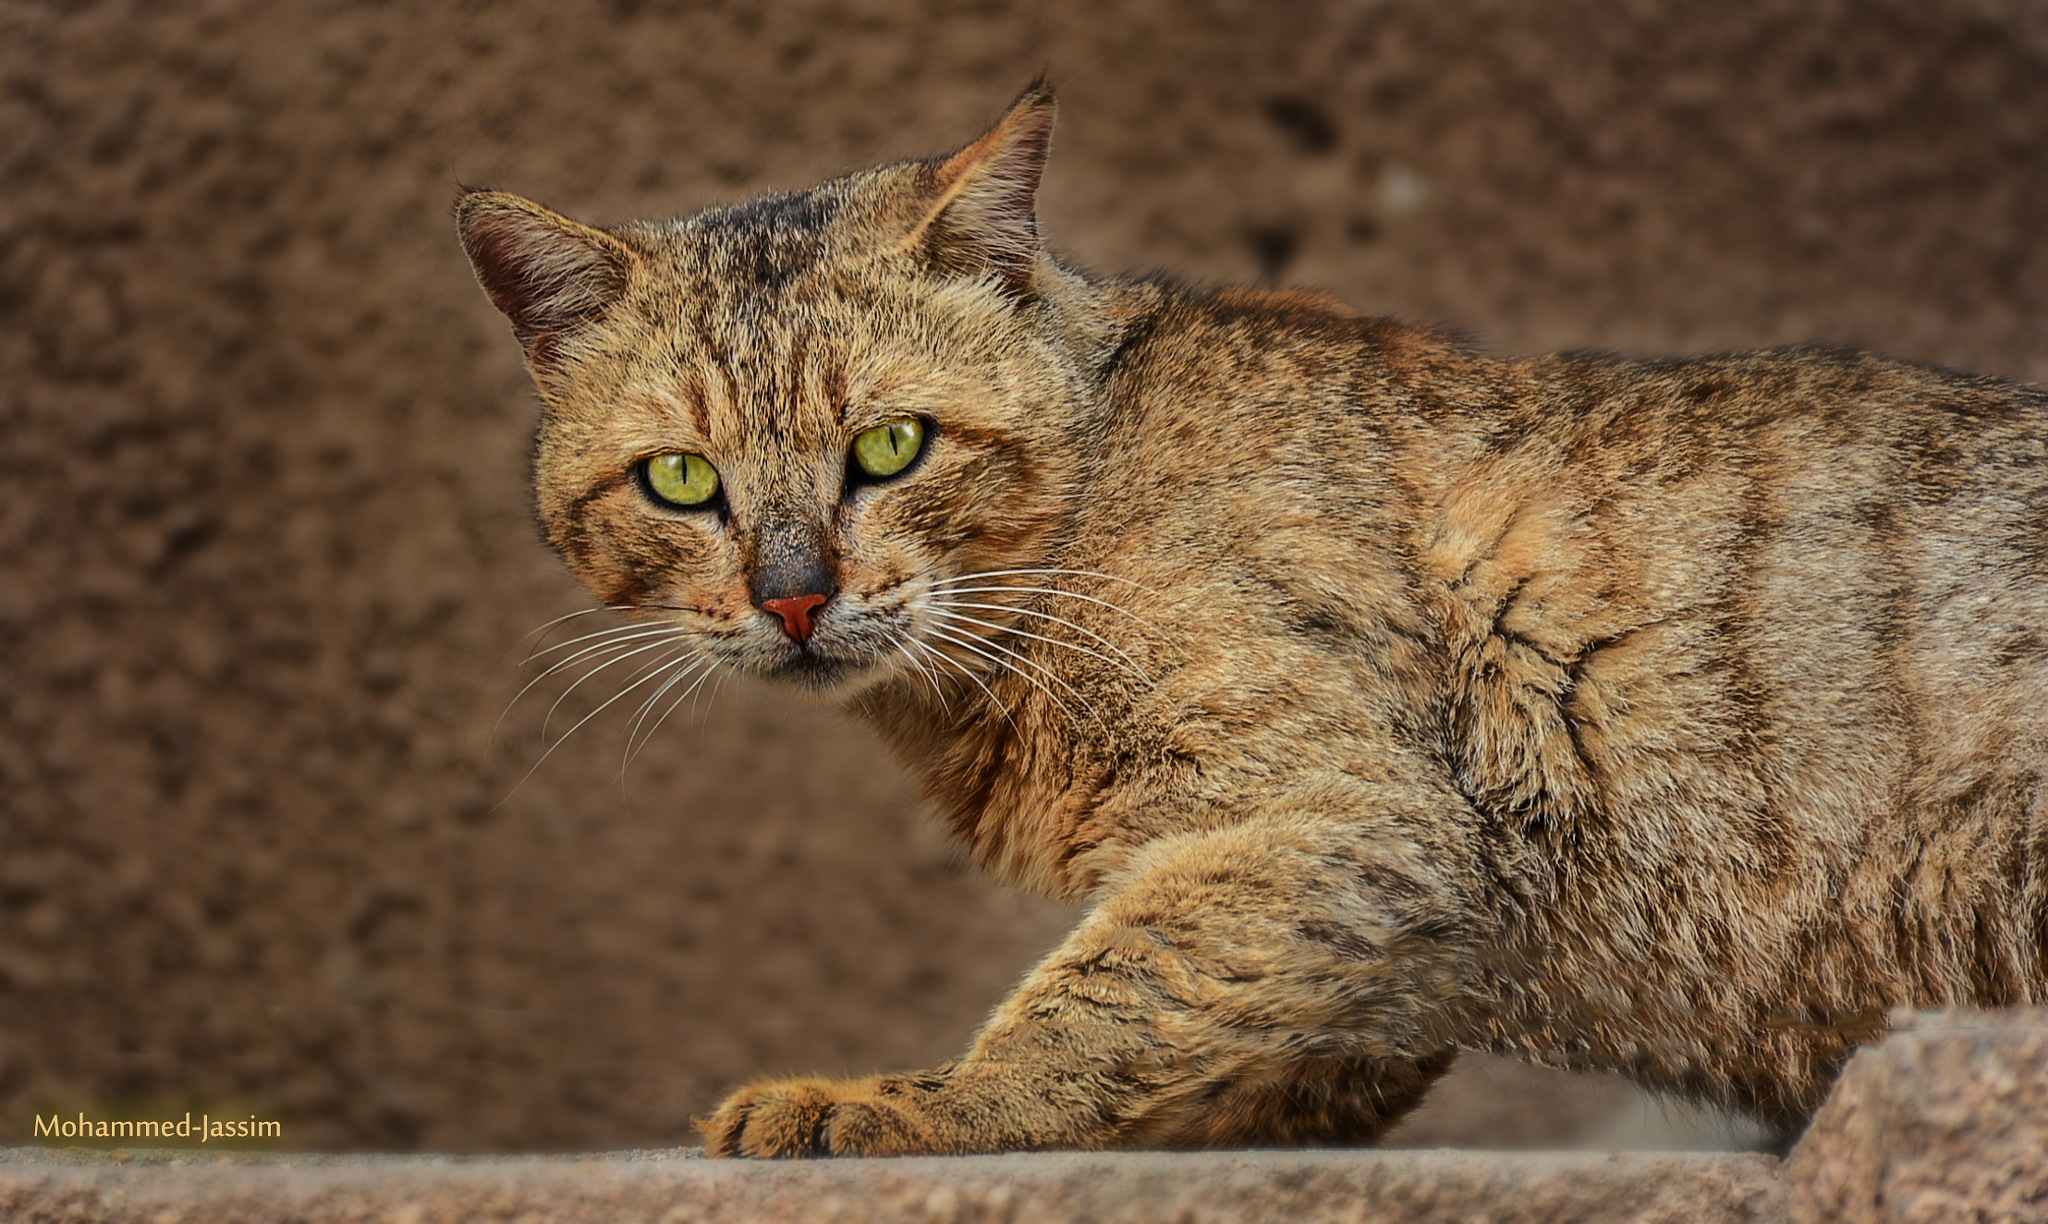 Cat by Mohammed Jassim